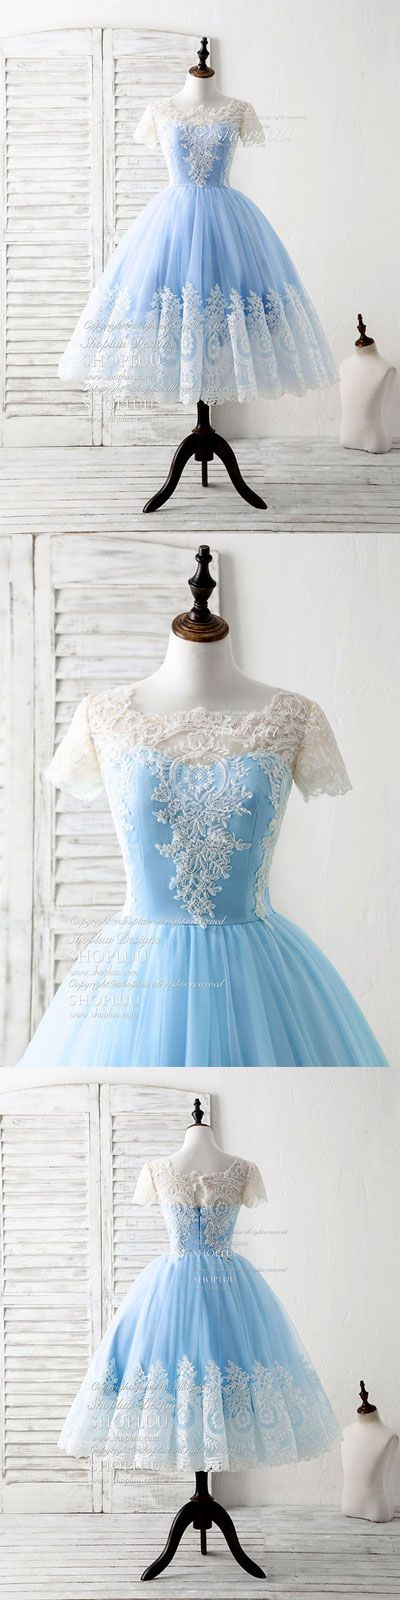 Blue tulle lace short prom dress blue bridesmaid dress, blue wedding party dress, blue sweet 16 dress